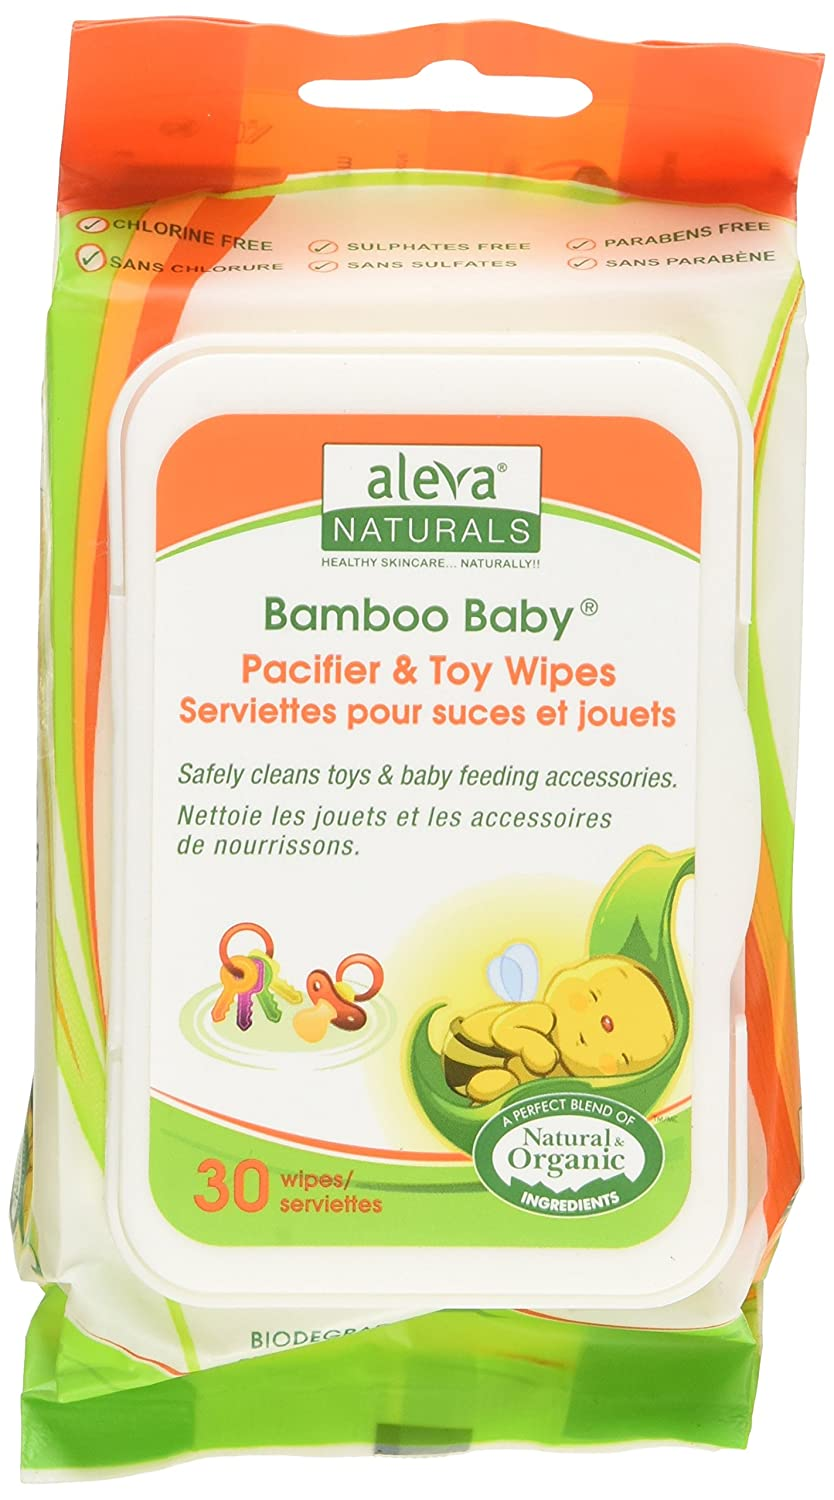 Aleva Naturals Bamboo Baby Pacifier and Toy Wipe Everready First Aid 16792-NEW